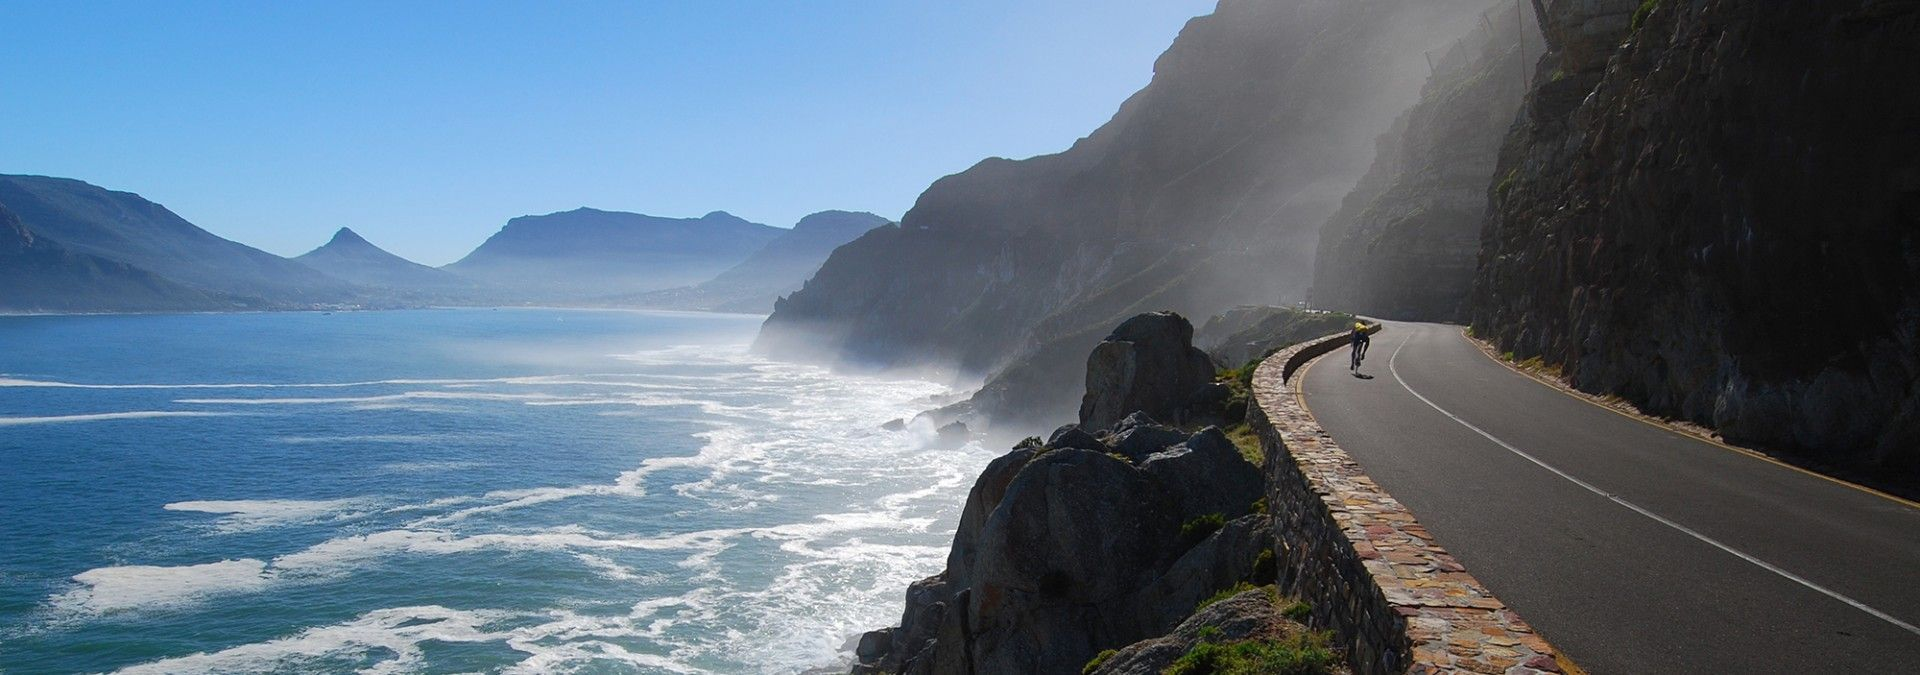 Cyclist_on_coastal_road_South_Africa.jpg